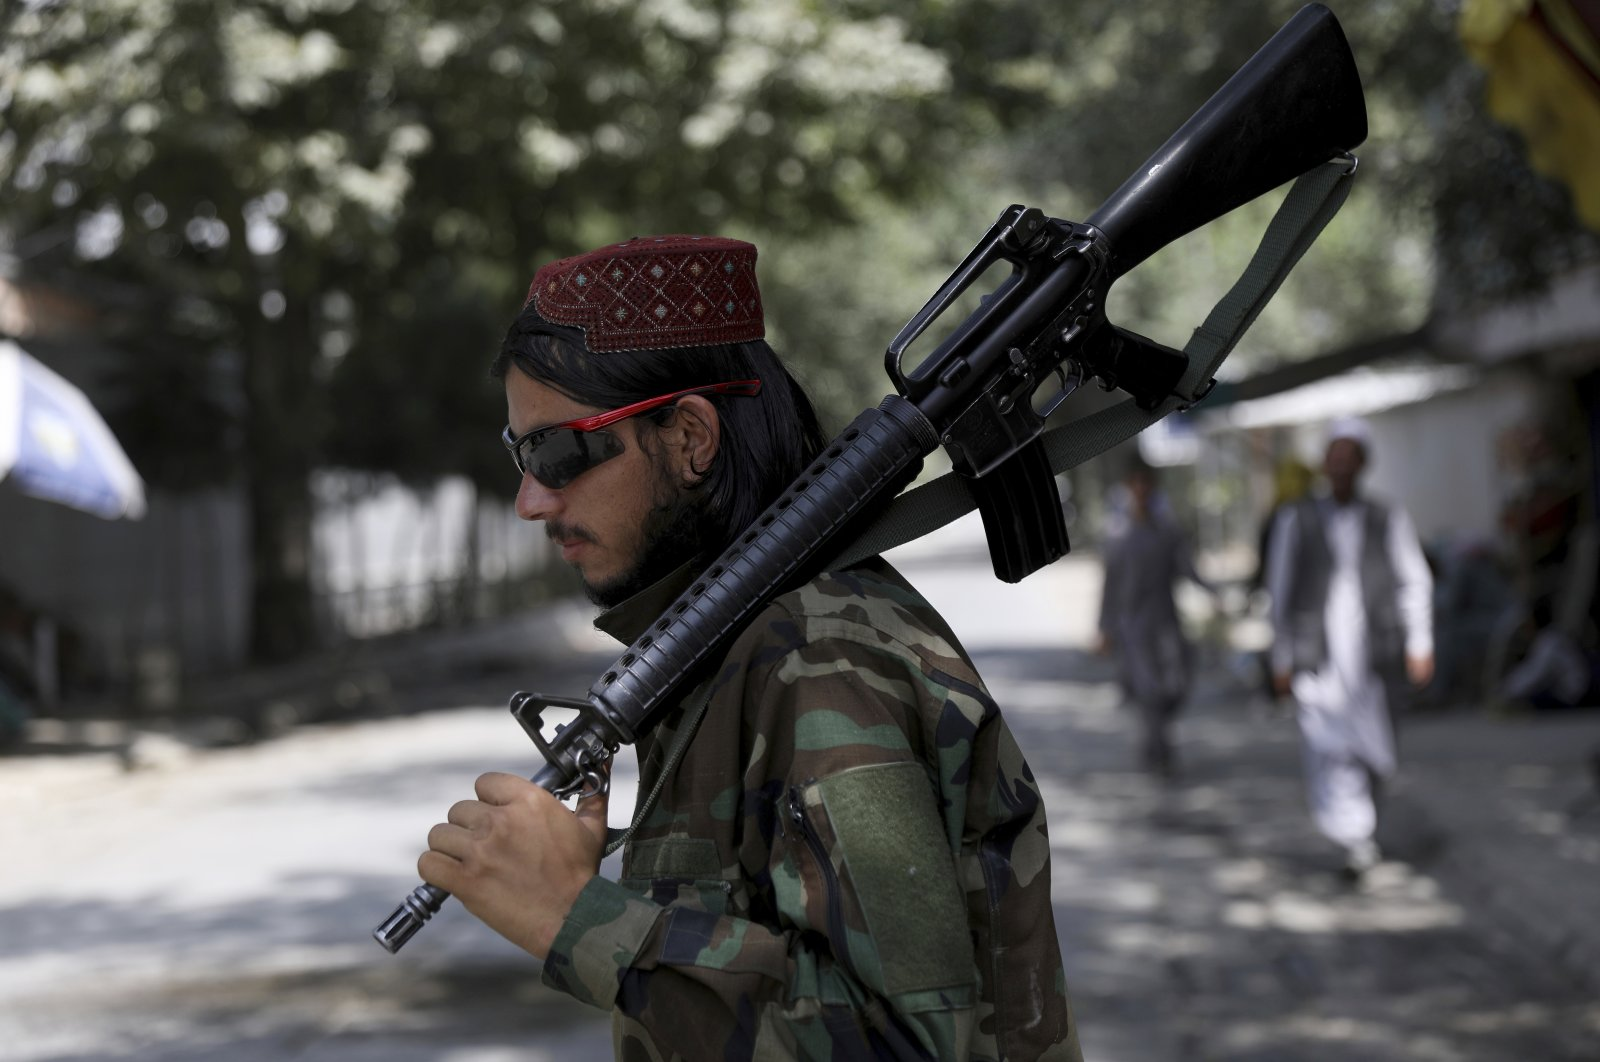 A Taliban fighter stands guard at a checkpoint in the Wazir Akbar Khan neighborhood in the city of Kabul, Afghanistan, Sunday, Aug. 22, 2021. (AP Photo)